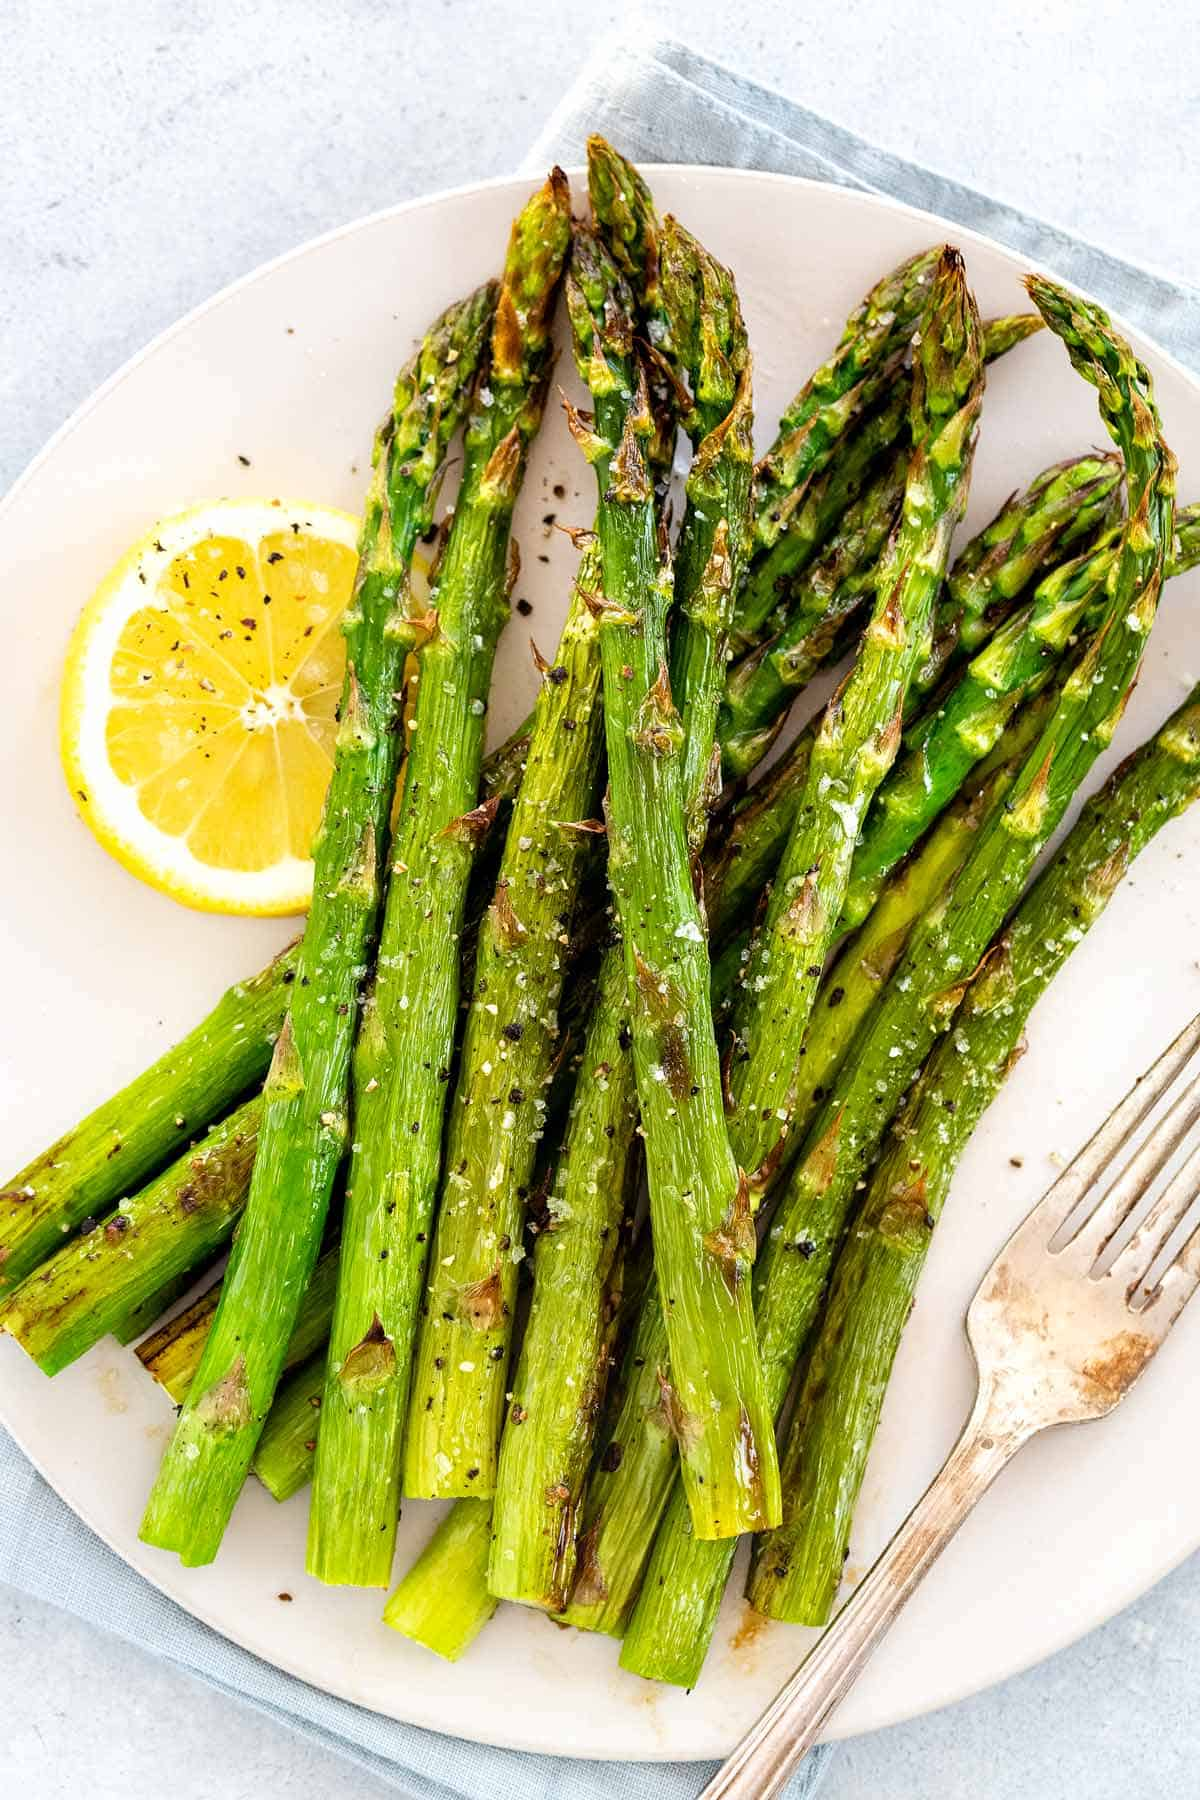 Learn how to cook asparagus 6 ways! You can prepare this fibrous vegetable by either boiling, steaming, roasting, sauteing, broiling, or pan-roasting. #asparagus #vegetable #vegetarian